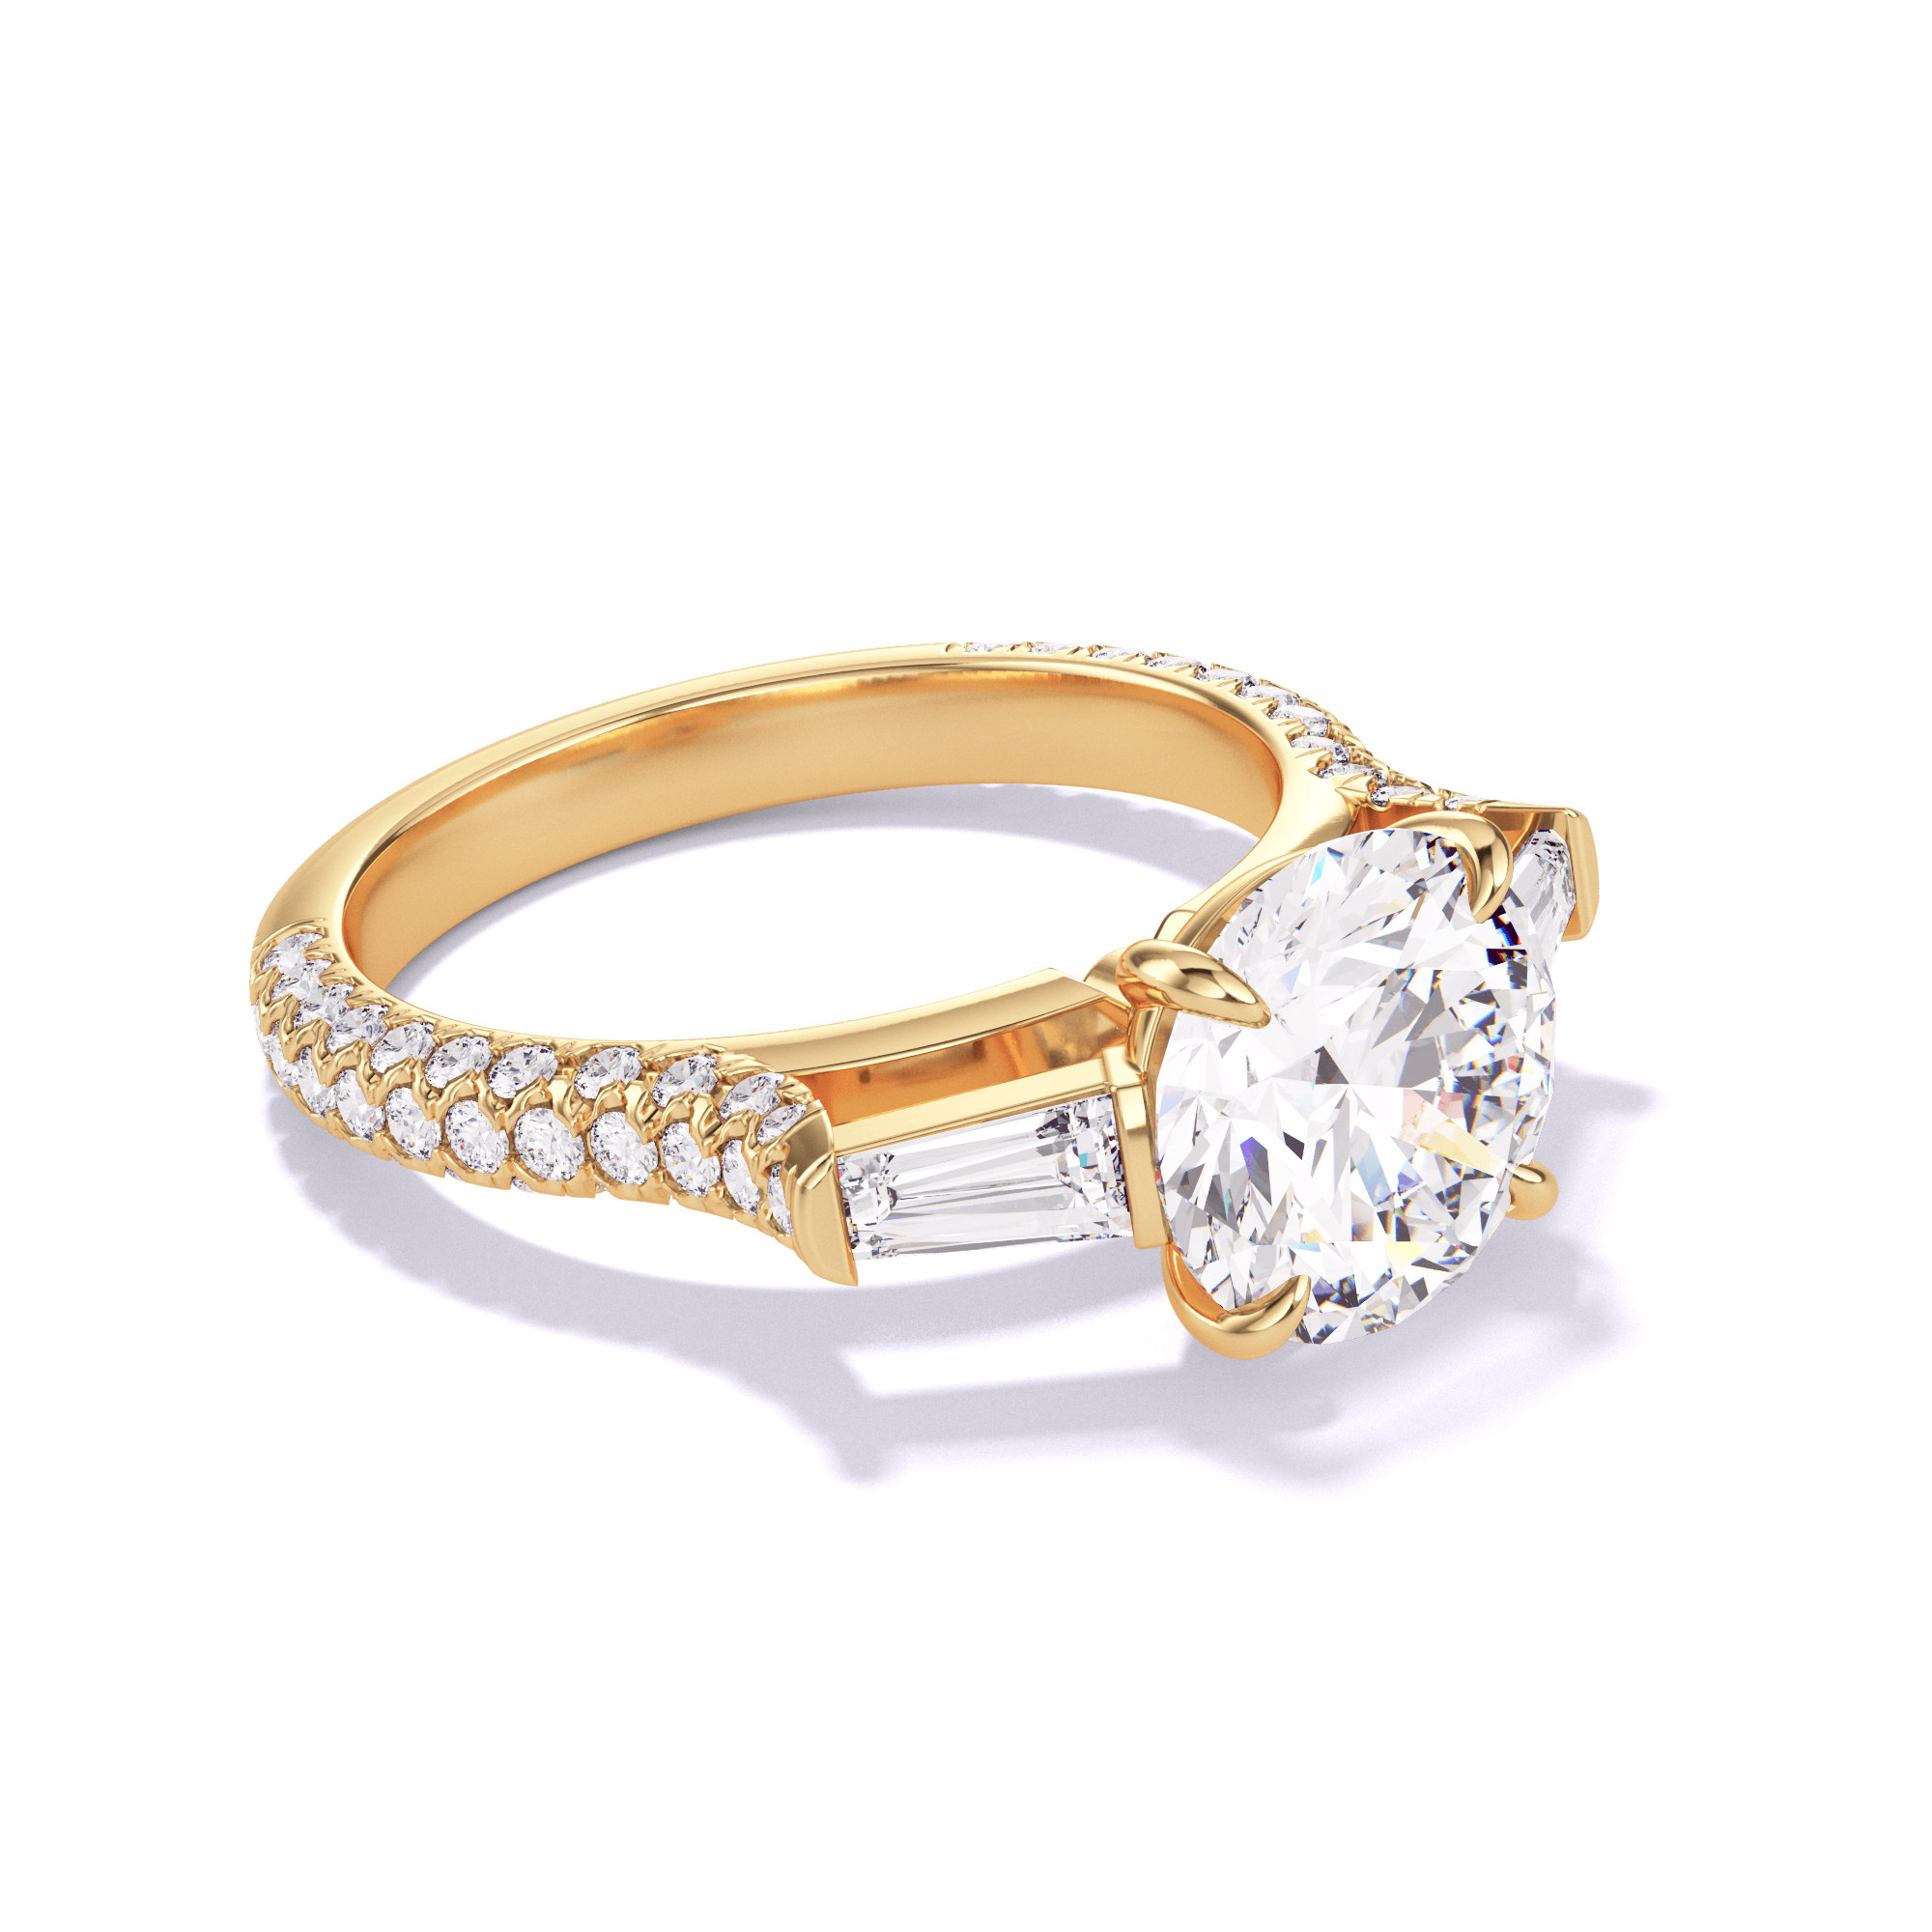 ROUND CUT, BAGUETTE FLANK SETTING, THREE PHASES TRIPLE PAVE, 18K YELLOW GOLD